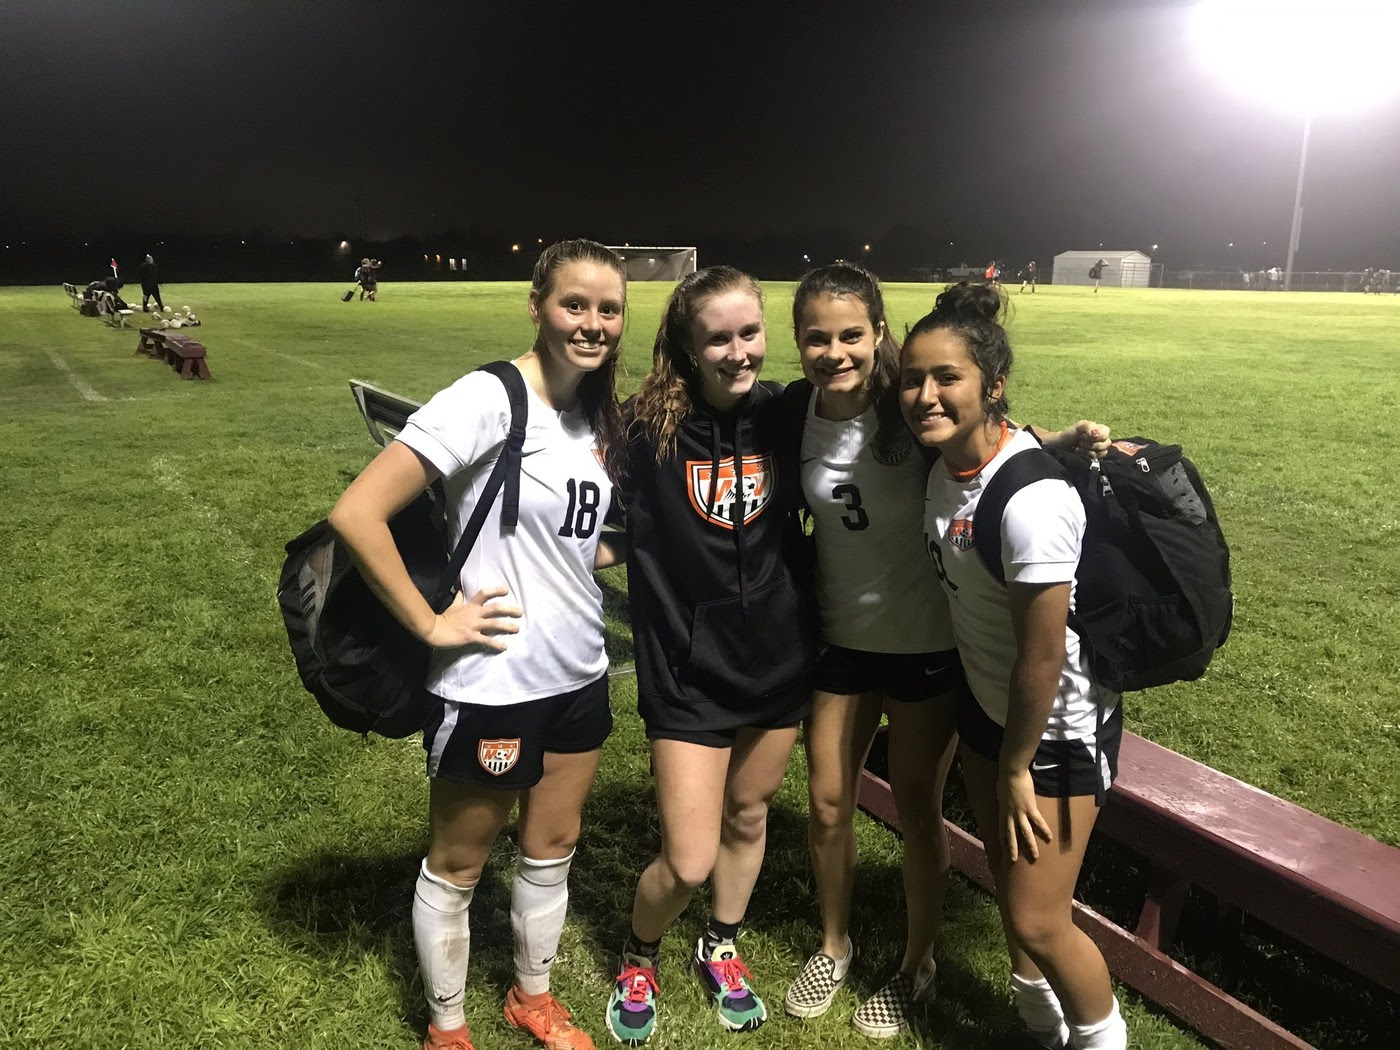 Left to Right)Senior Alee Schott, senior Audra Clark, senior Regan Lewis, and sophomore Nadia Reyna together smiling after a win.